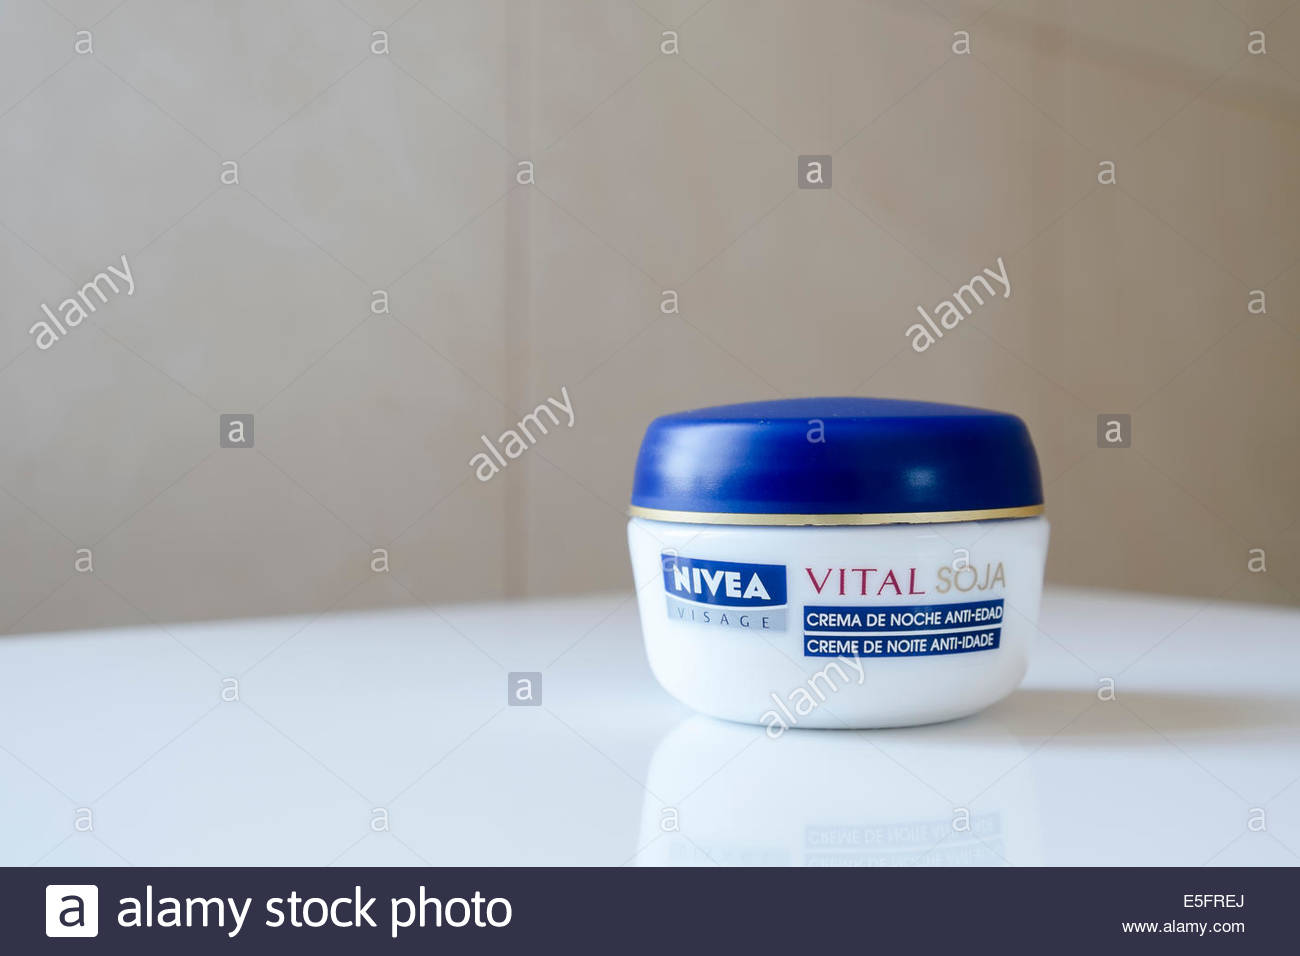 Nivea Visage Vital Soja night cream as sold in Portugal - Stock Image